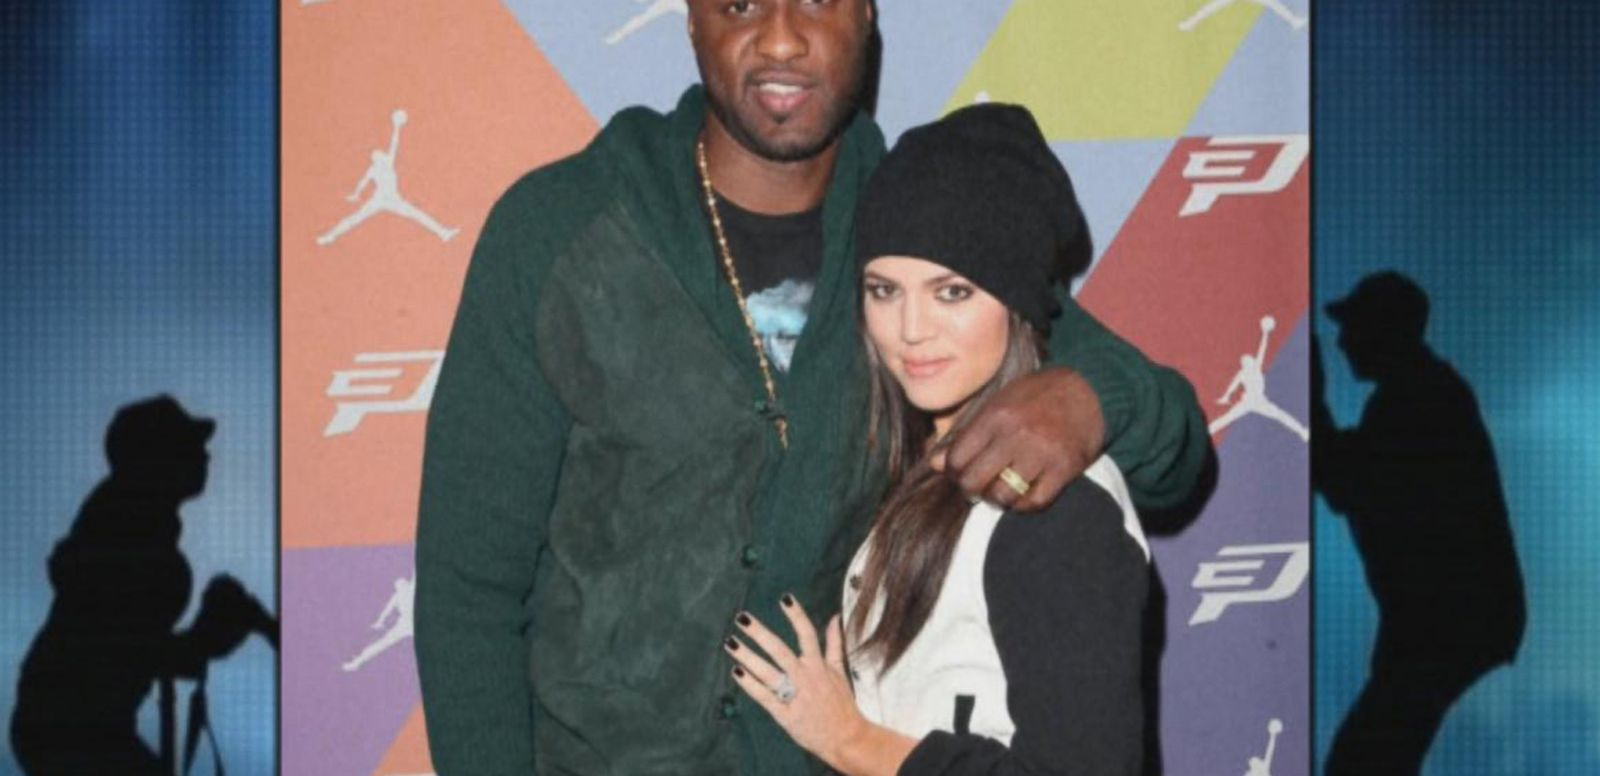 VIDEO: Khloe Kardashian Files to Divorce Lamar Odom--Again